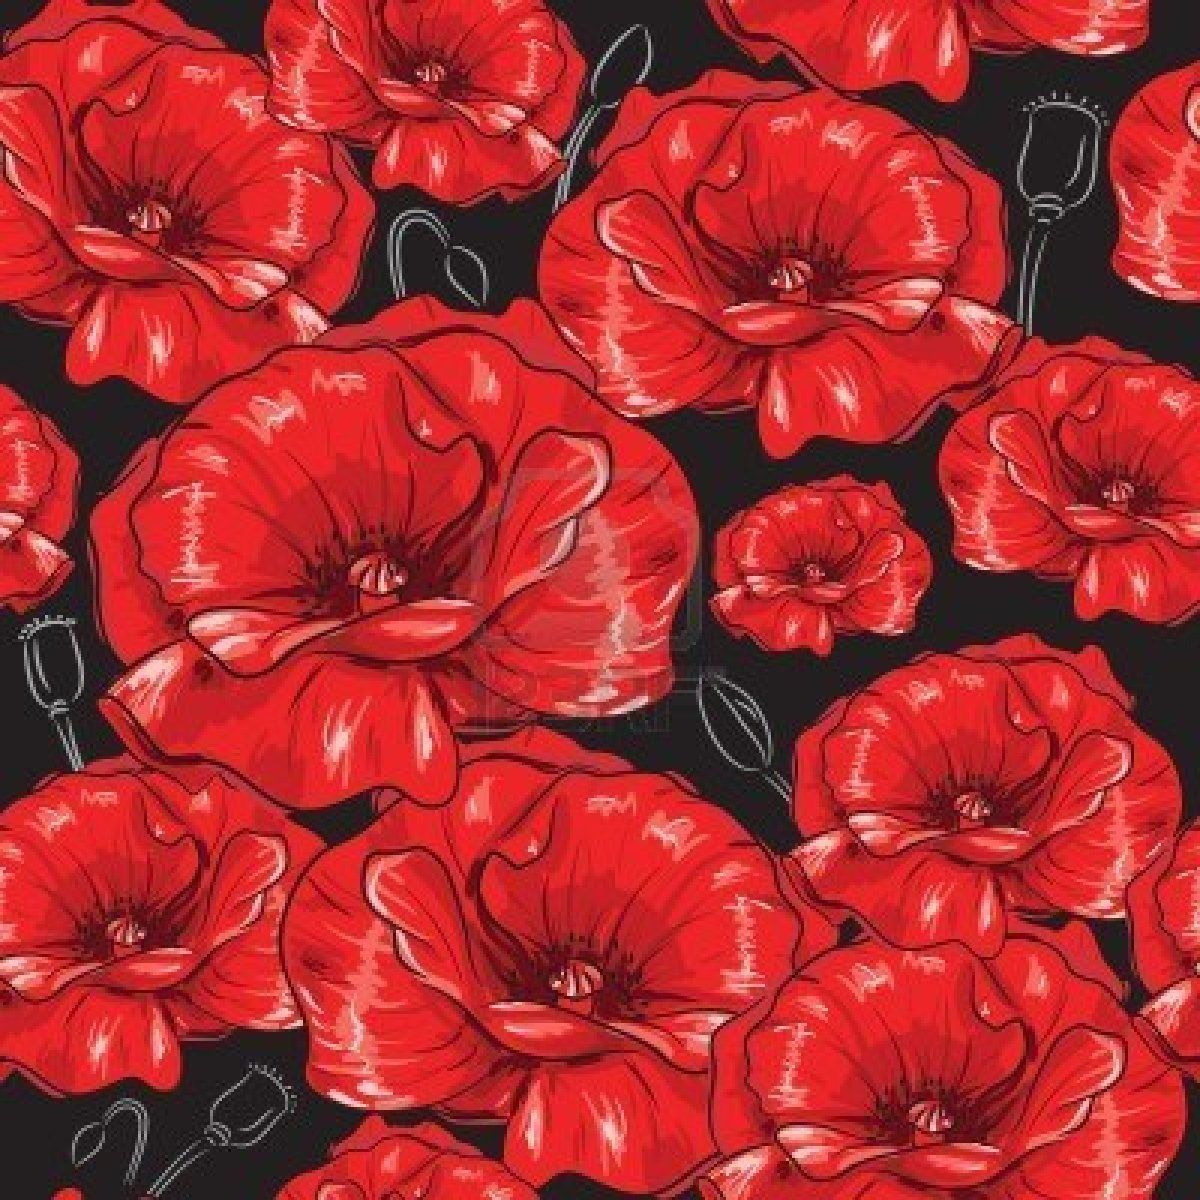 Stock Vector Red poppies, Flower painting, Poppies